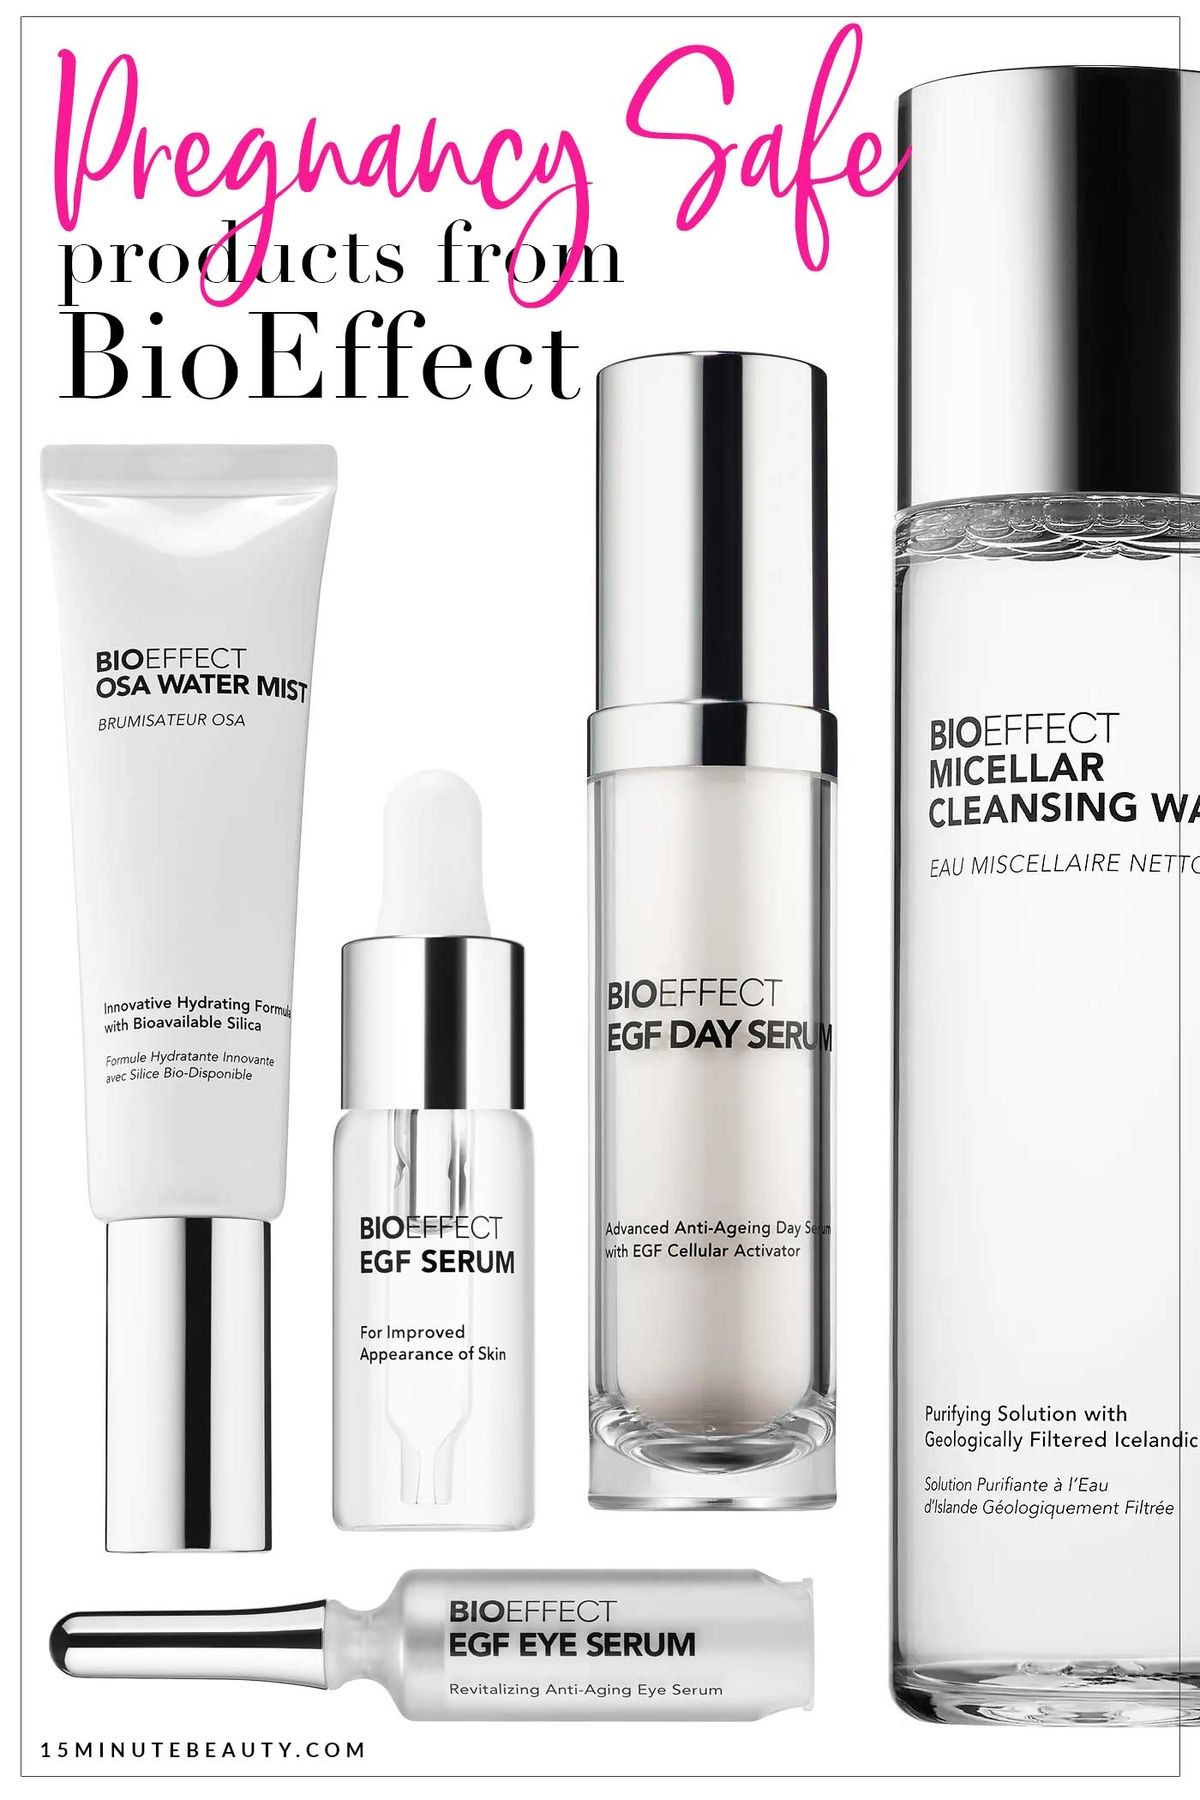 Is it ok to use BioEffect Skincare when pregnant? The epidermal growth factors are great to fight aging, and this is an amazing new line at Sephora. But is it safe during pregnancy?